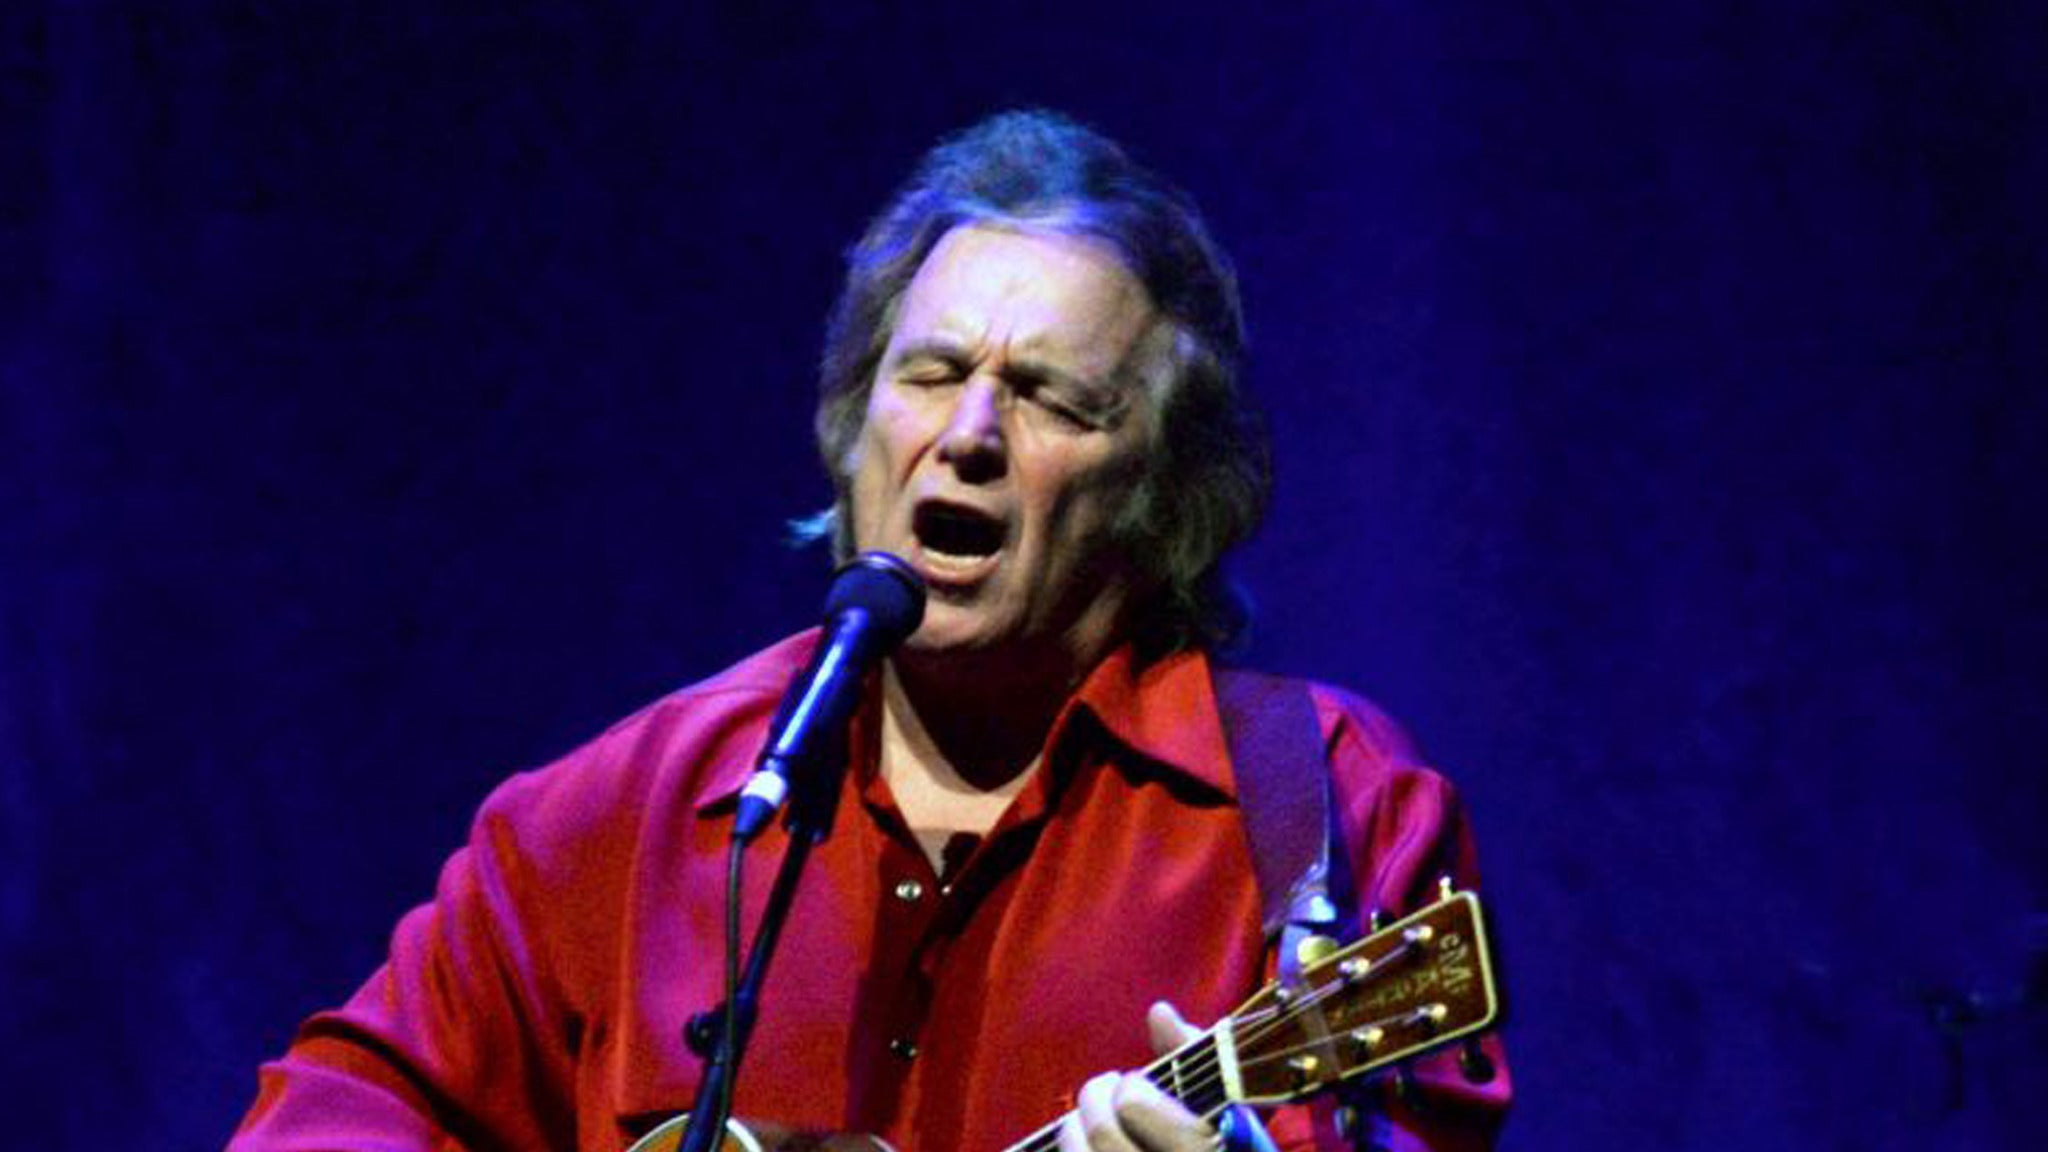 Don McLean at Sharon L Morse Performing Arts Center